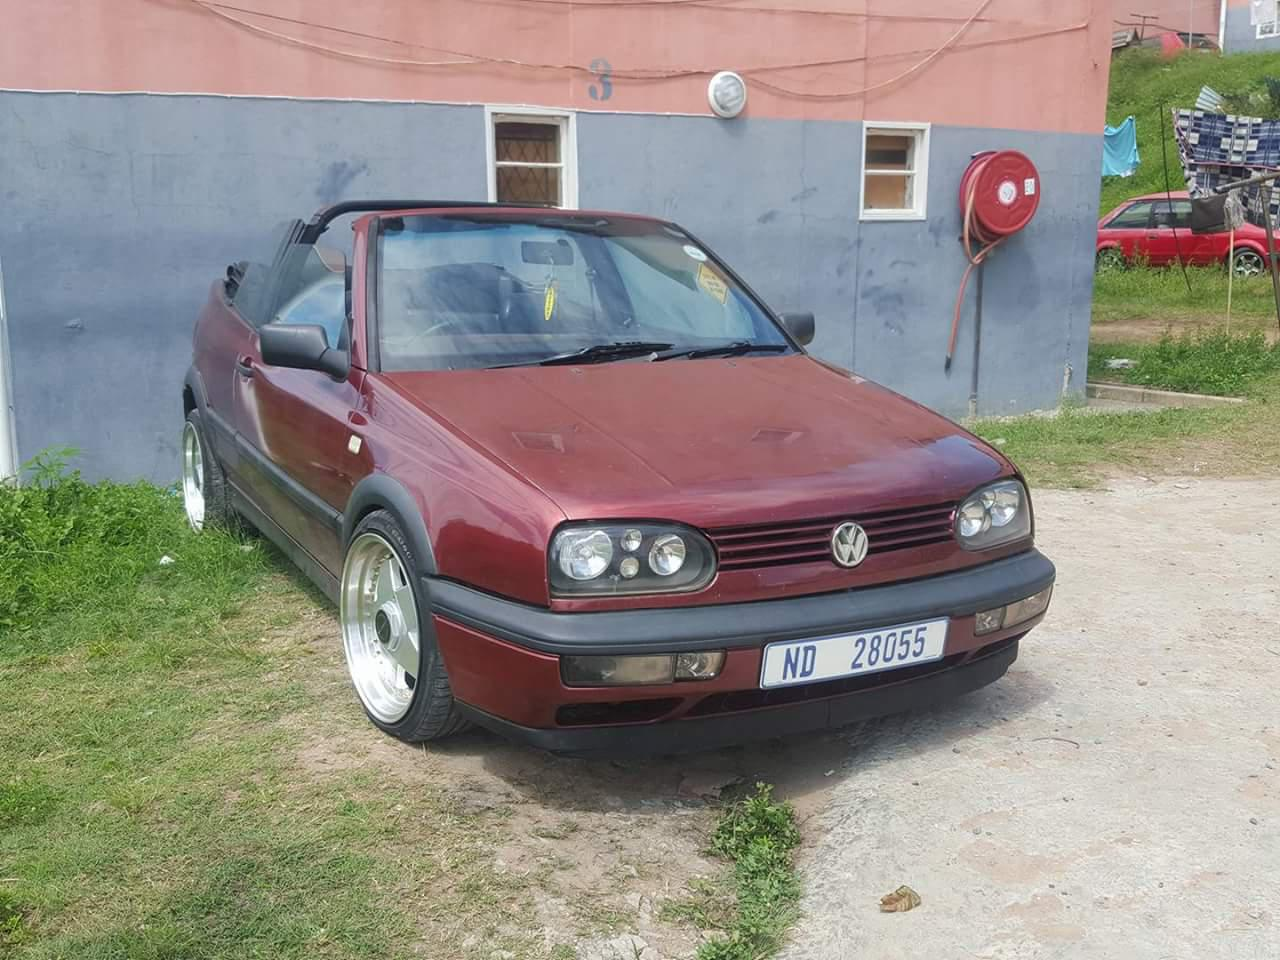 urgent sale golf 3 cabriolet durban public ads cars. Black Bedroom Furniture Sets. Home Design Ideas